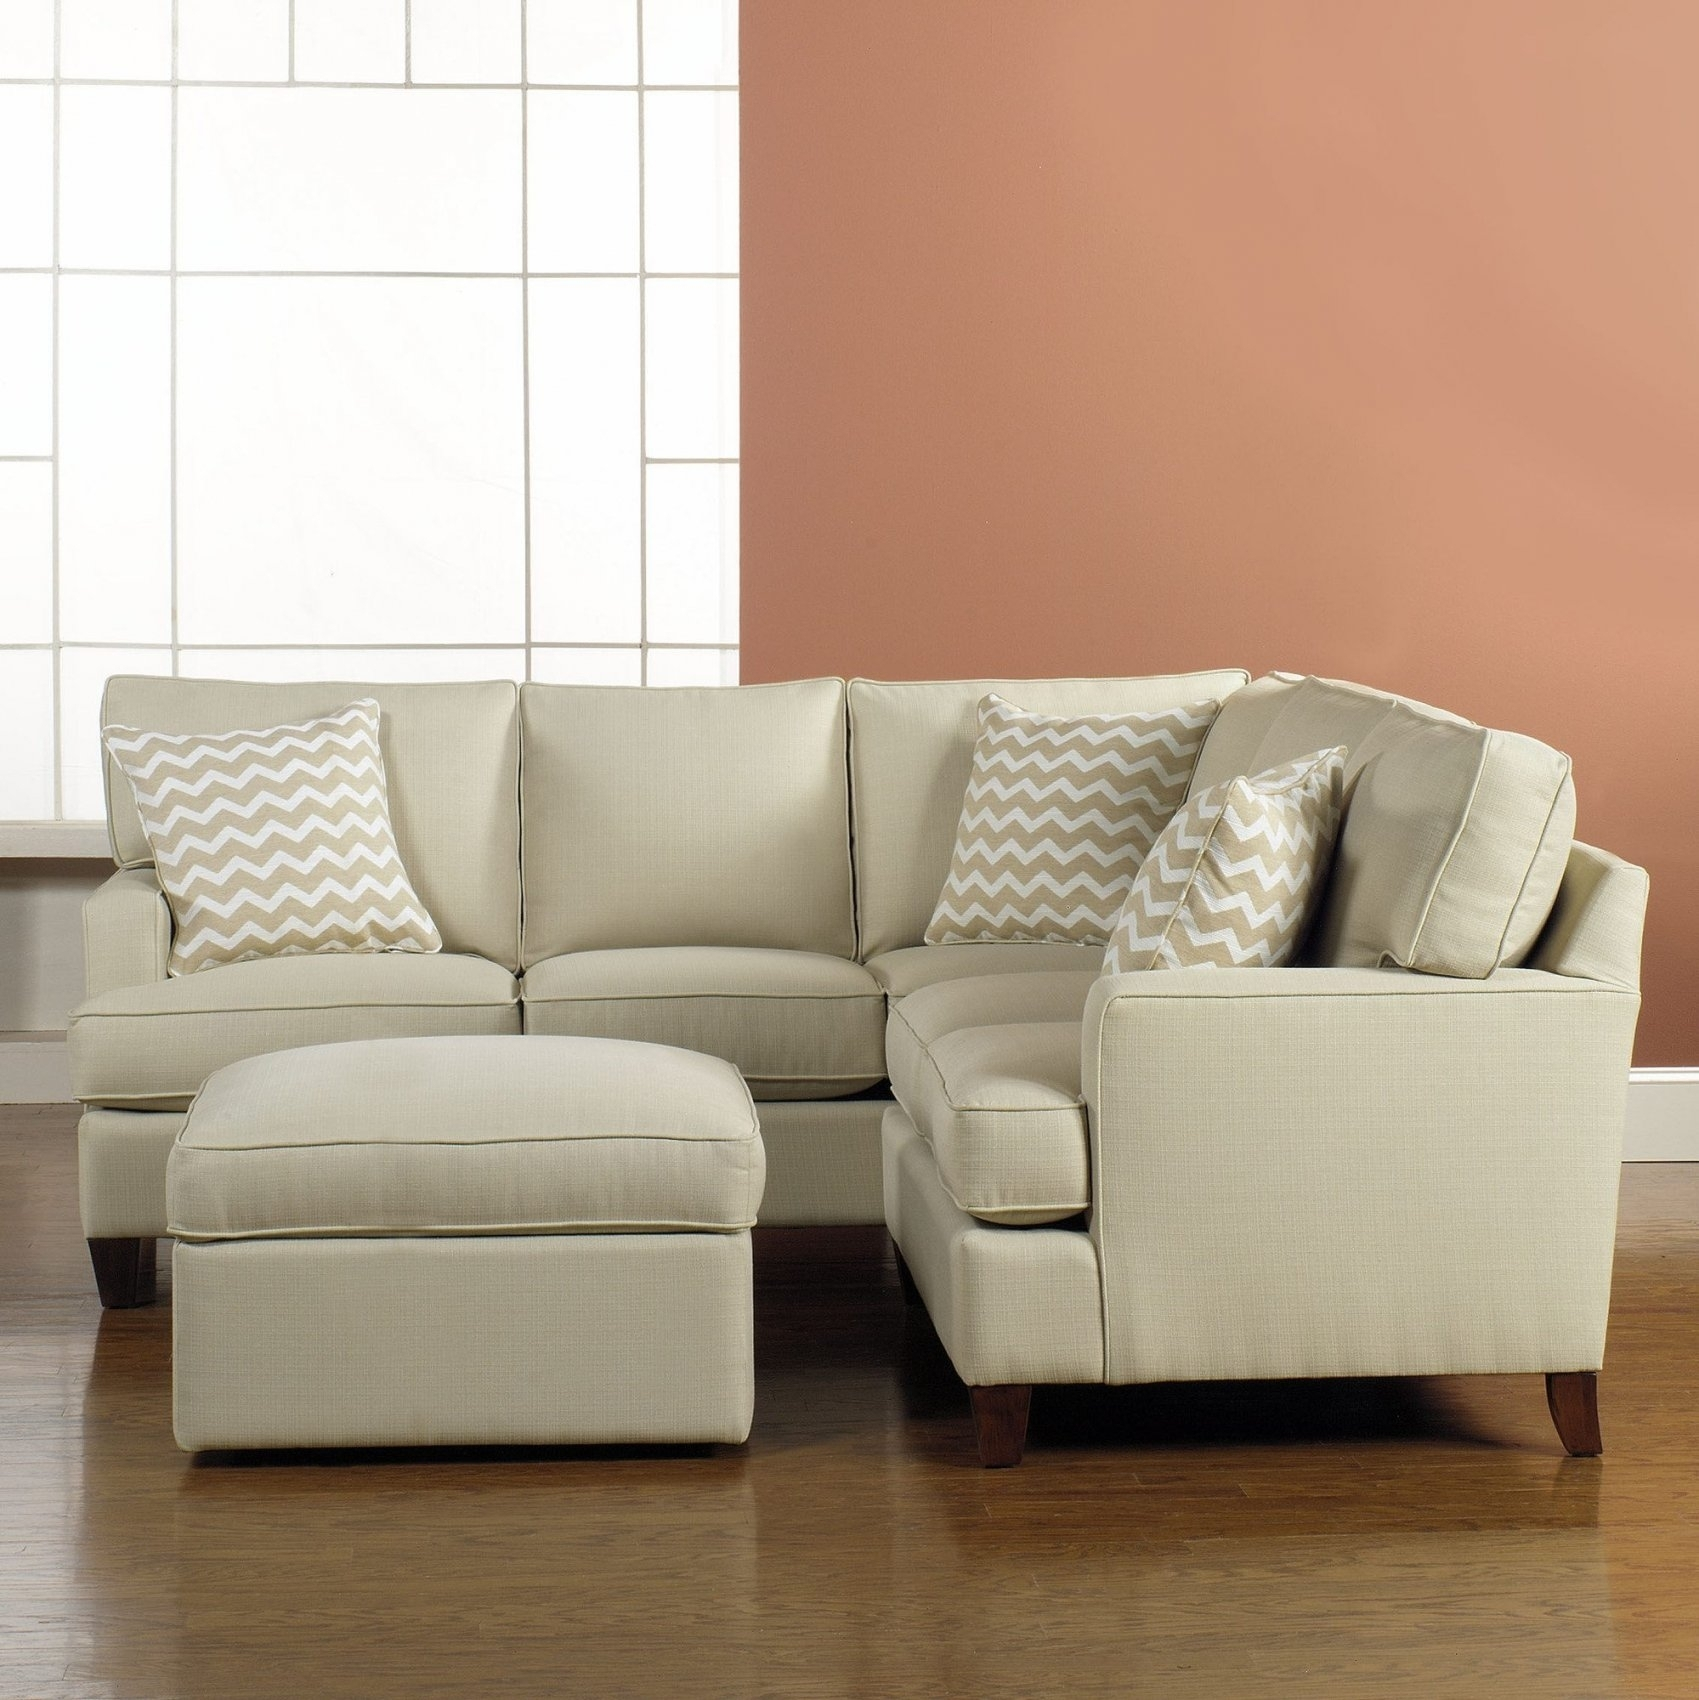 Sectional Sofa For Small Spaces 94 In Living Room Sofa With With Sectional Sofas For Small Areas (View 7 of 10)